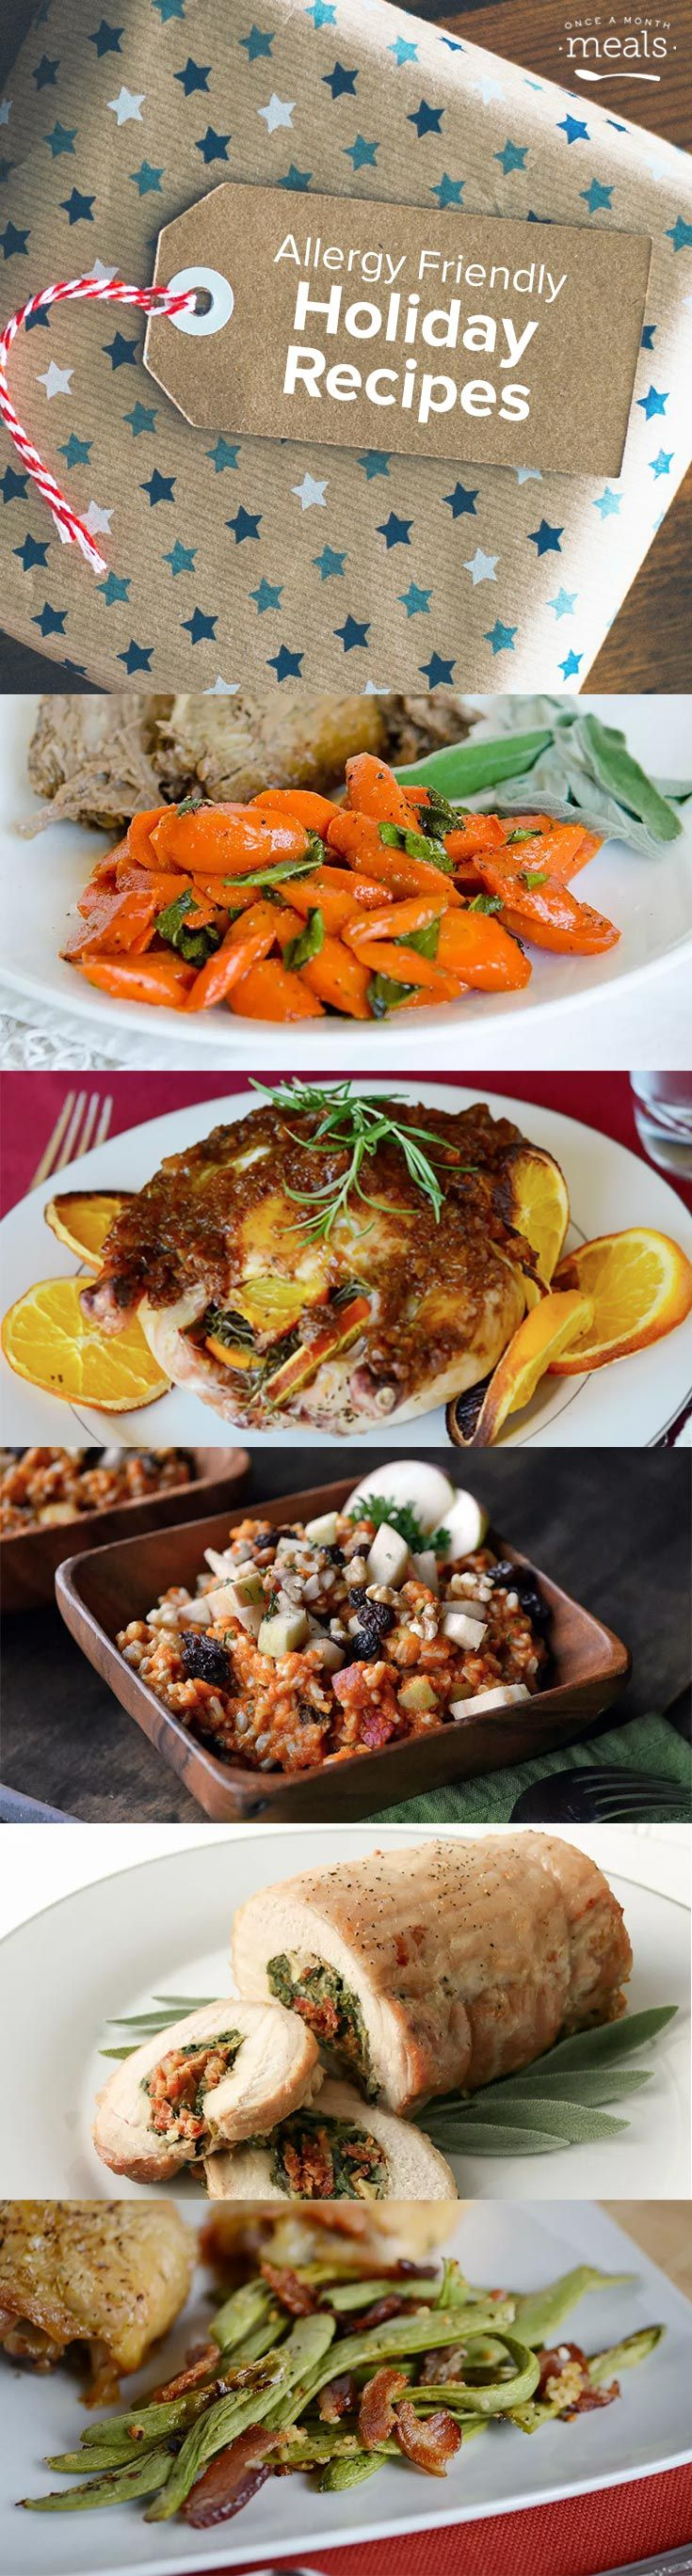 654 best Holiday Recipes and Inspiration images on Pinterest